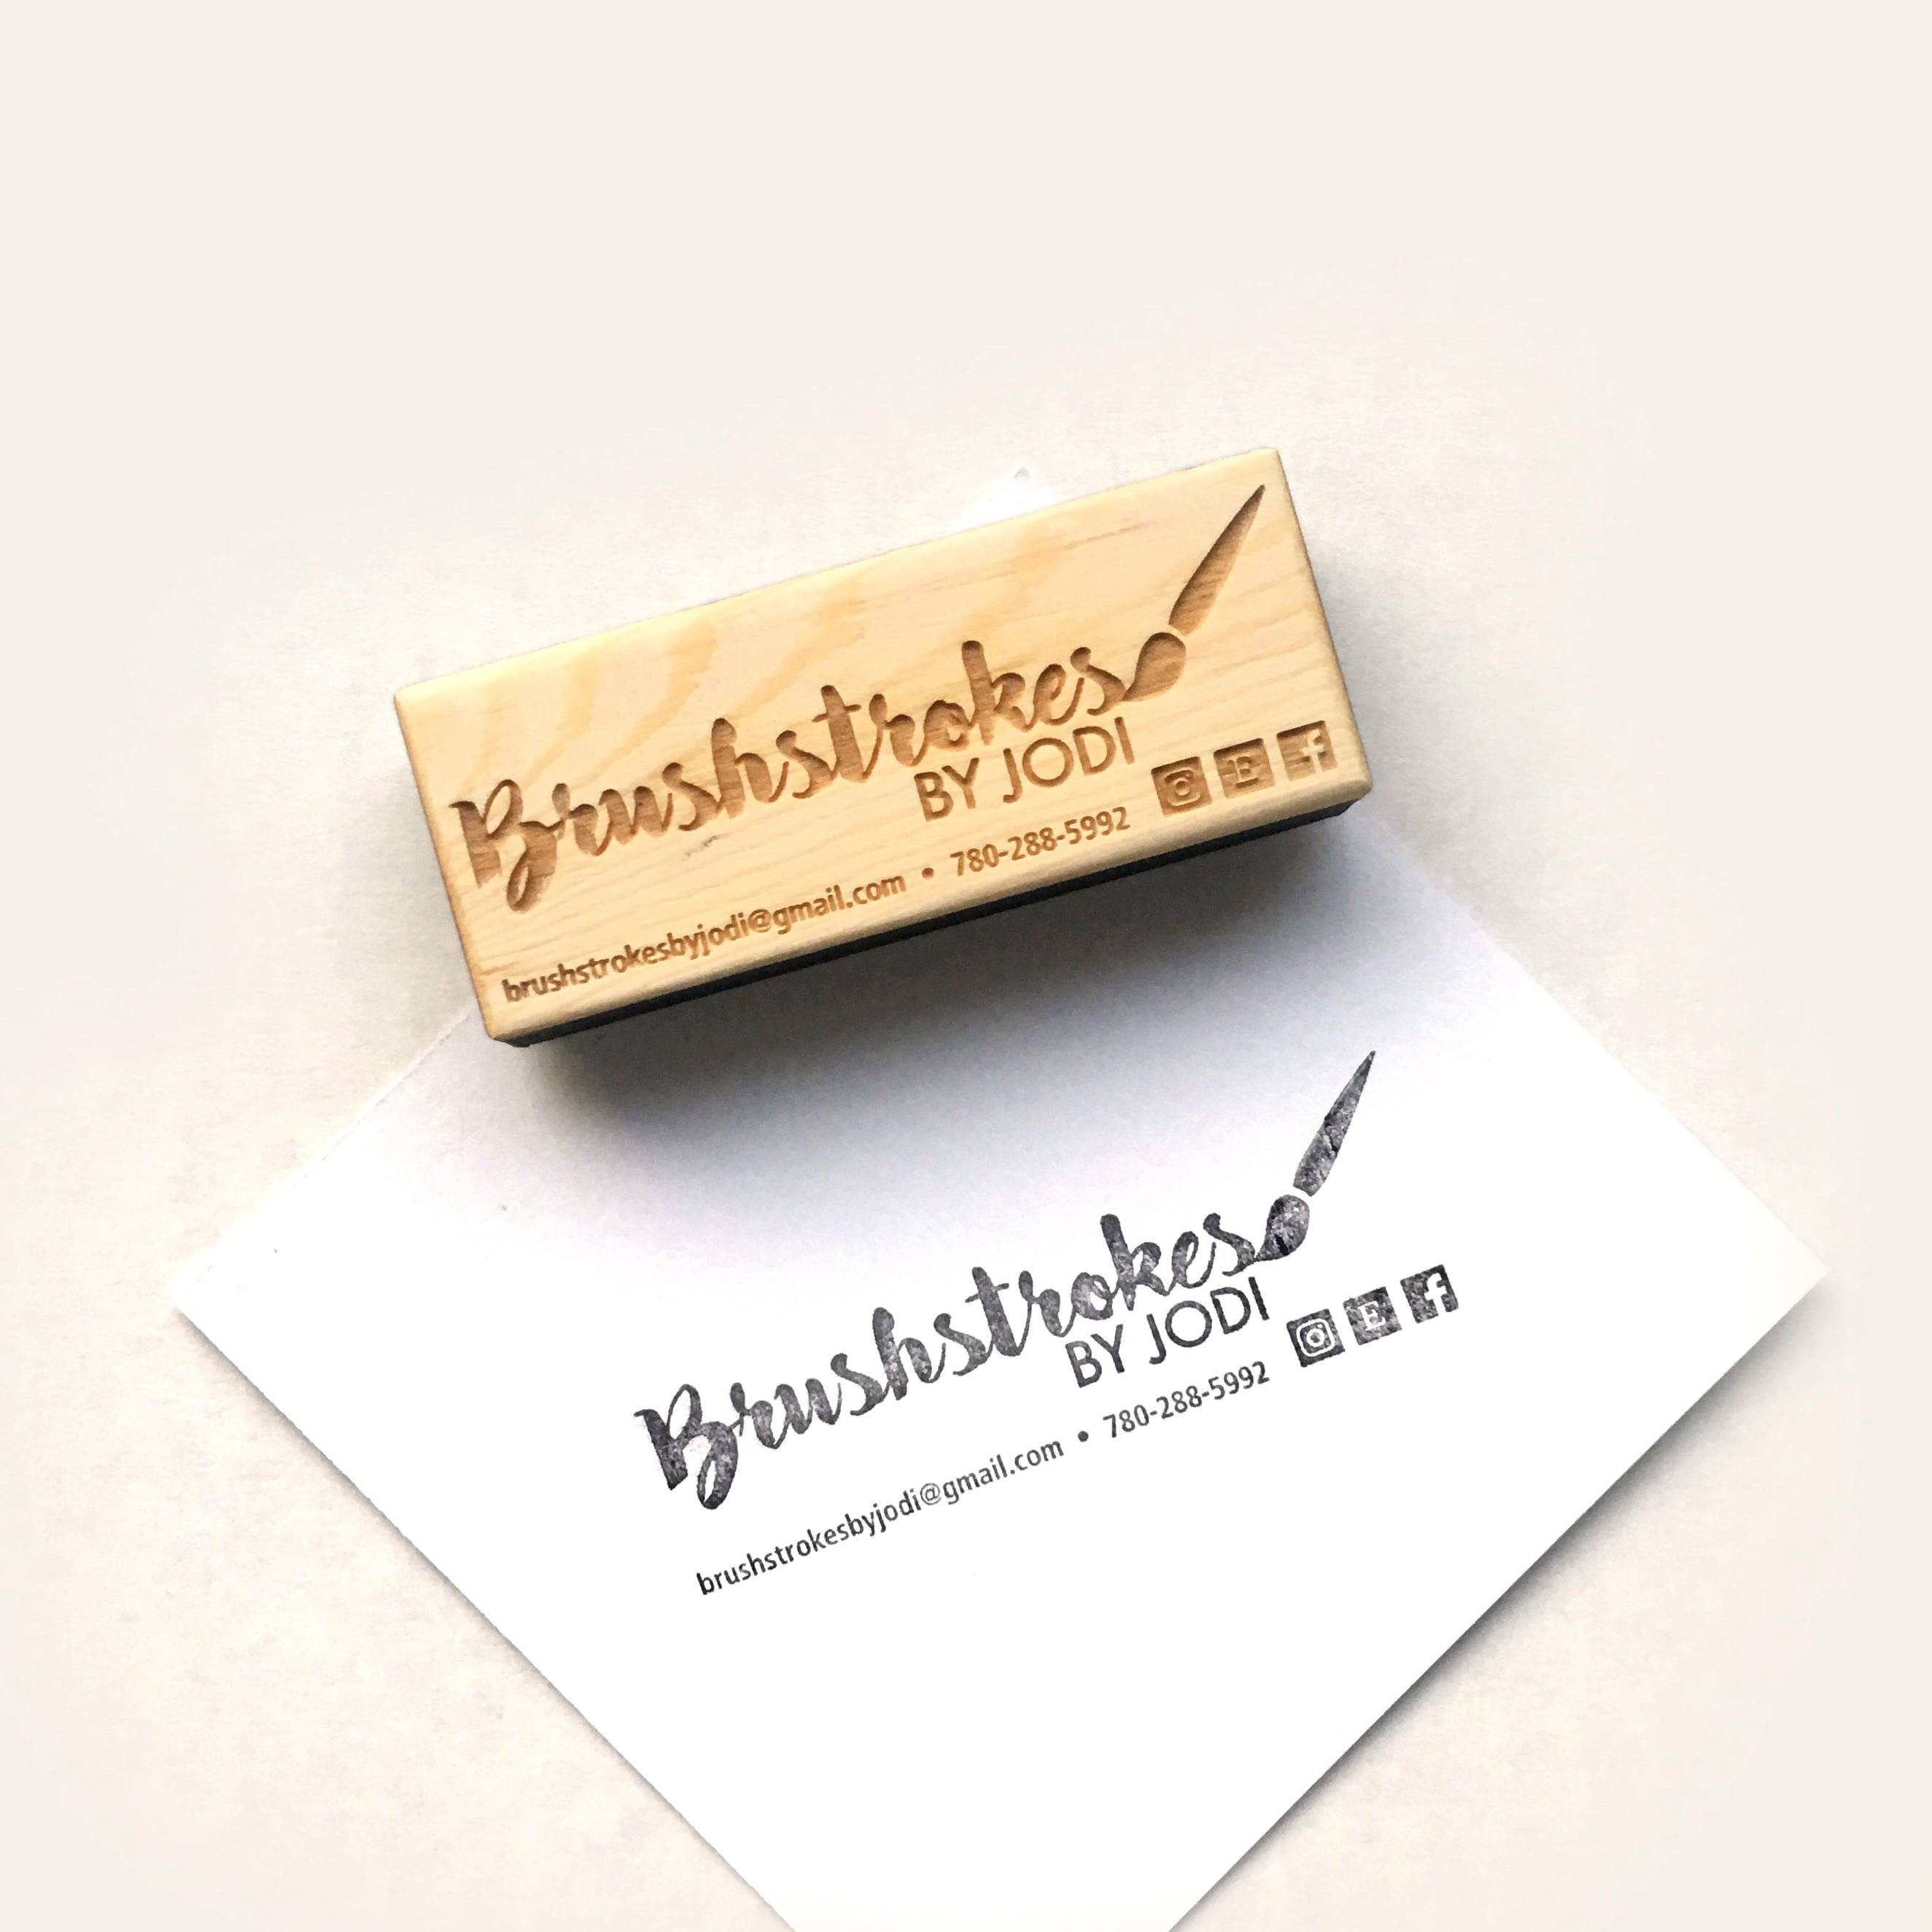 Custom Rubber Stamps Brickbubble